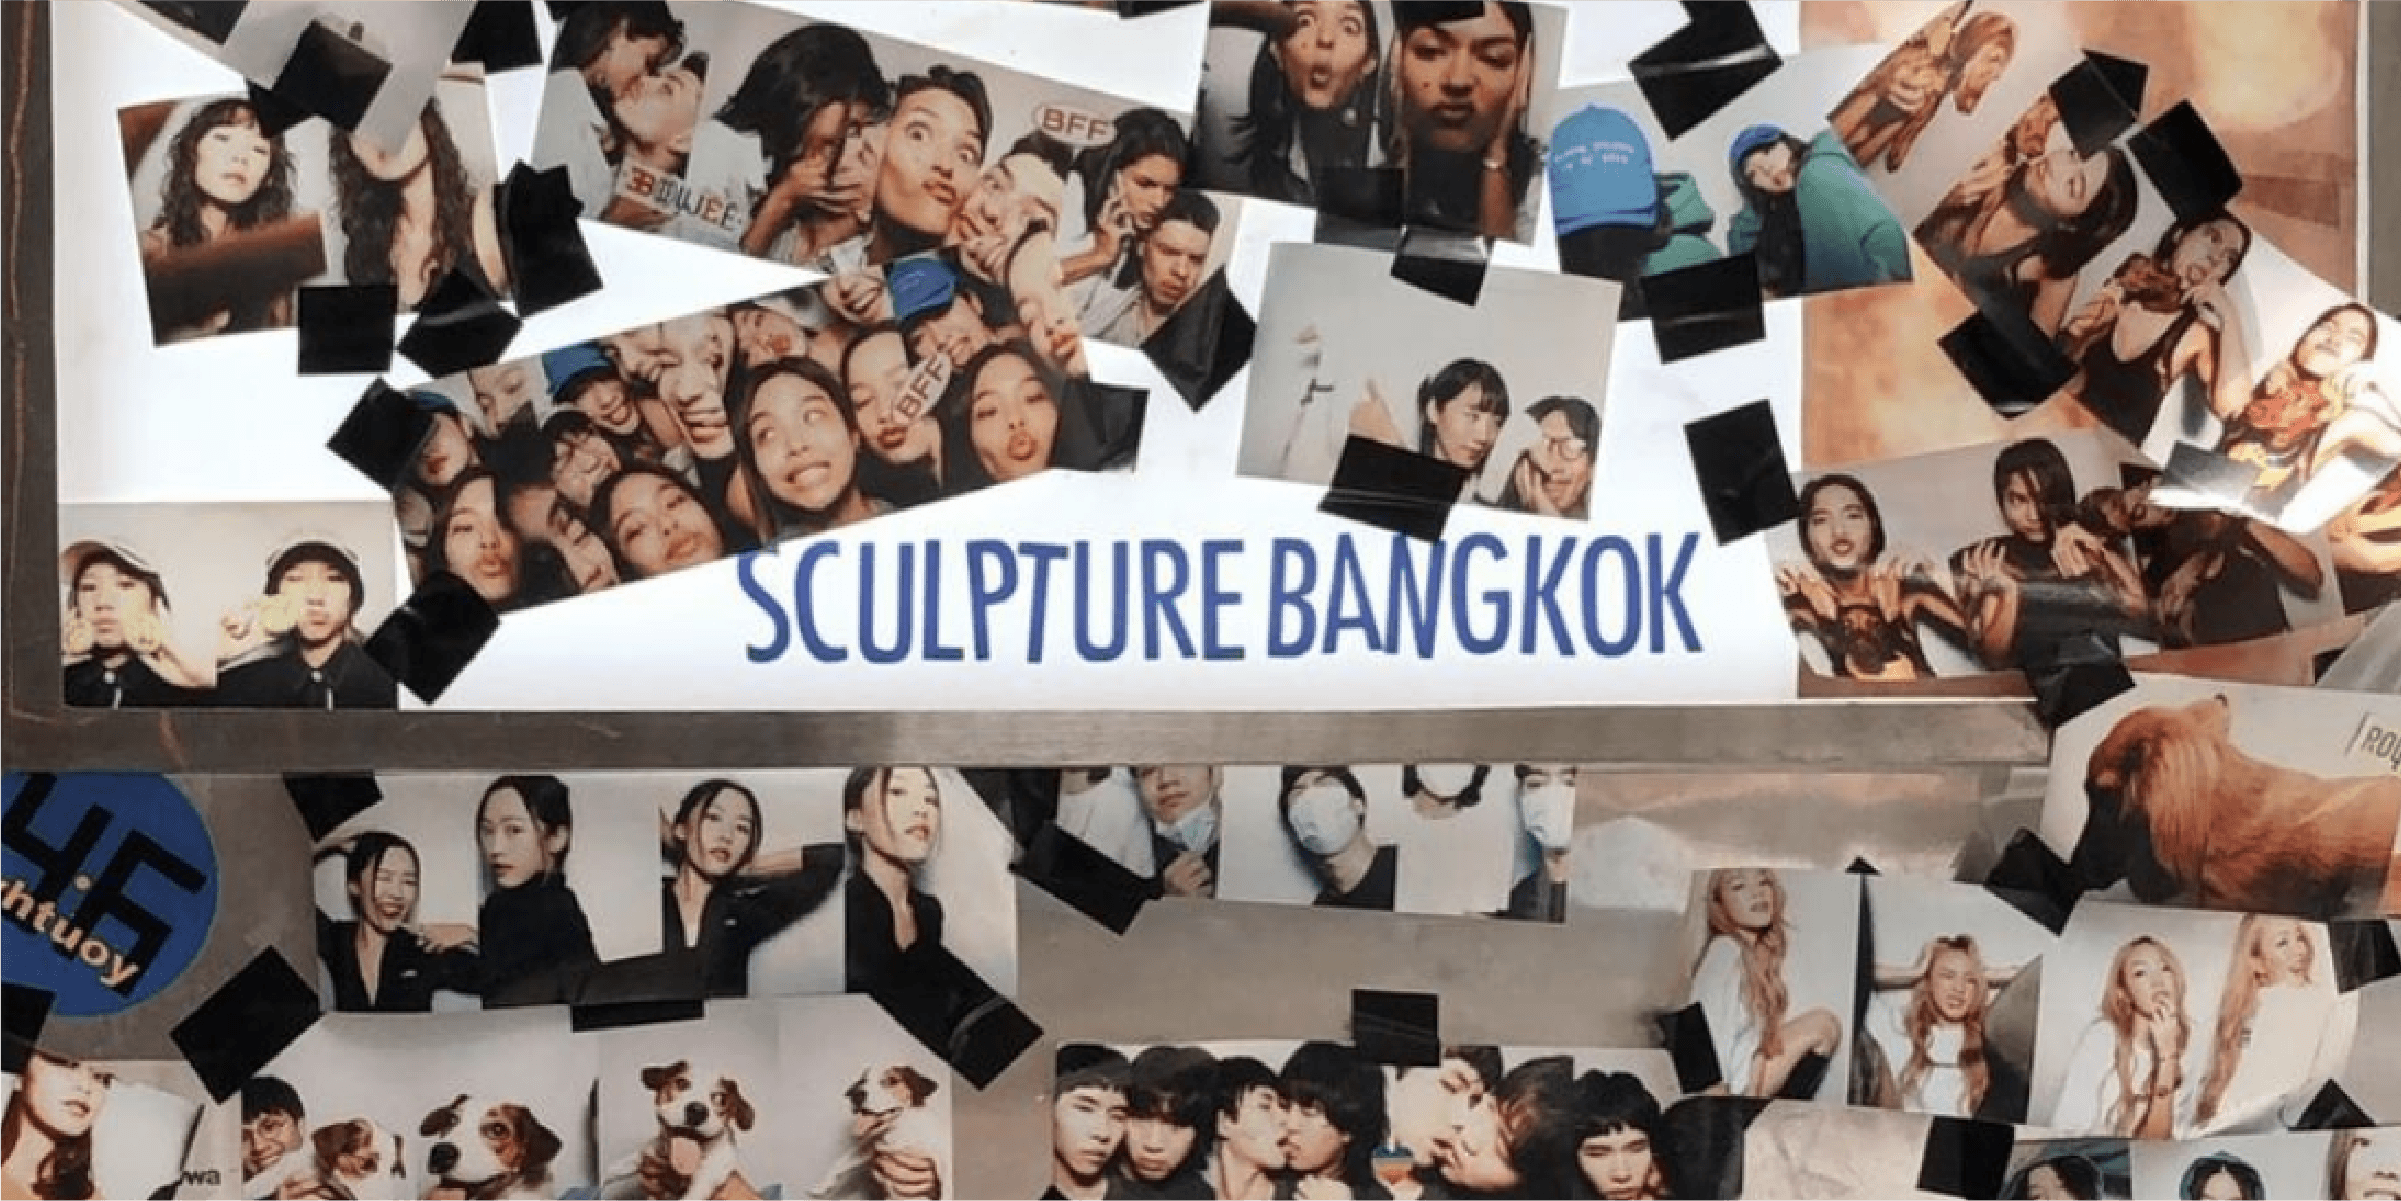 Sculpture Bangkok, a photo automat SME from Thailand, integrates PromptPay payment solution into its photobooths for automated payments